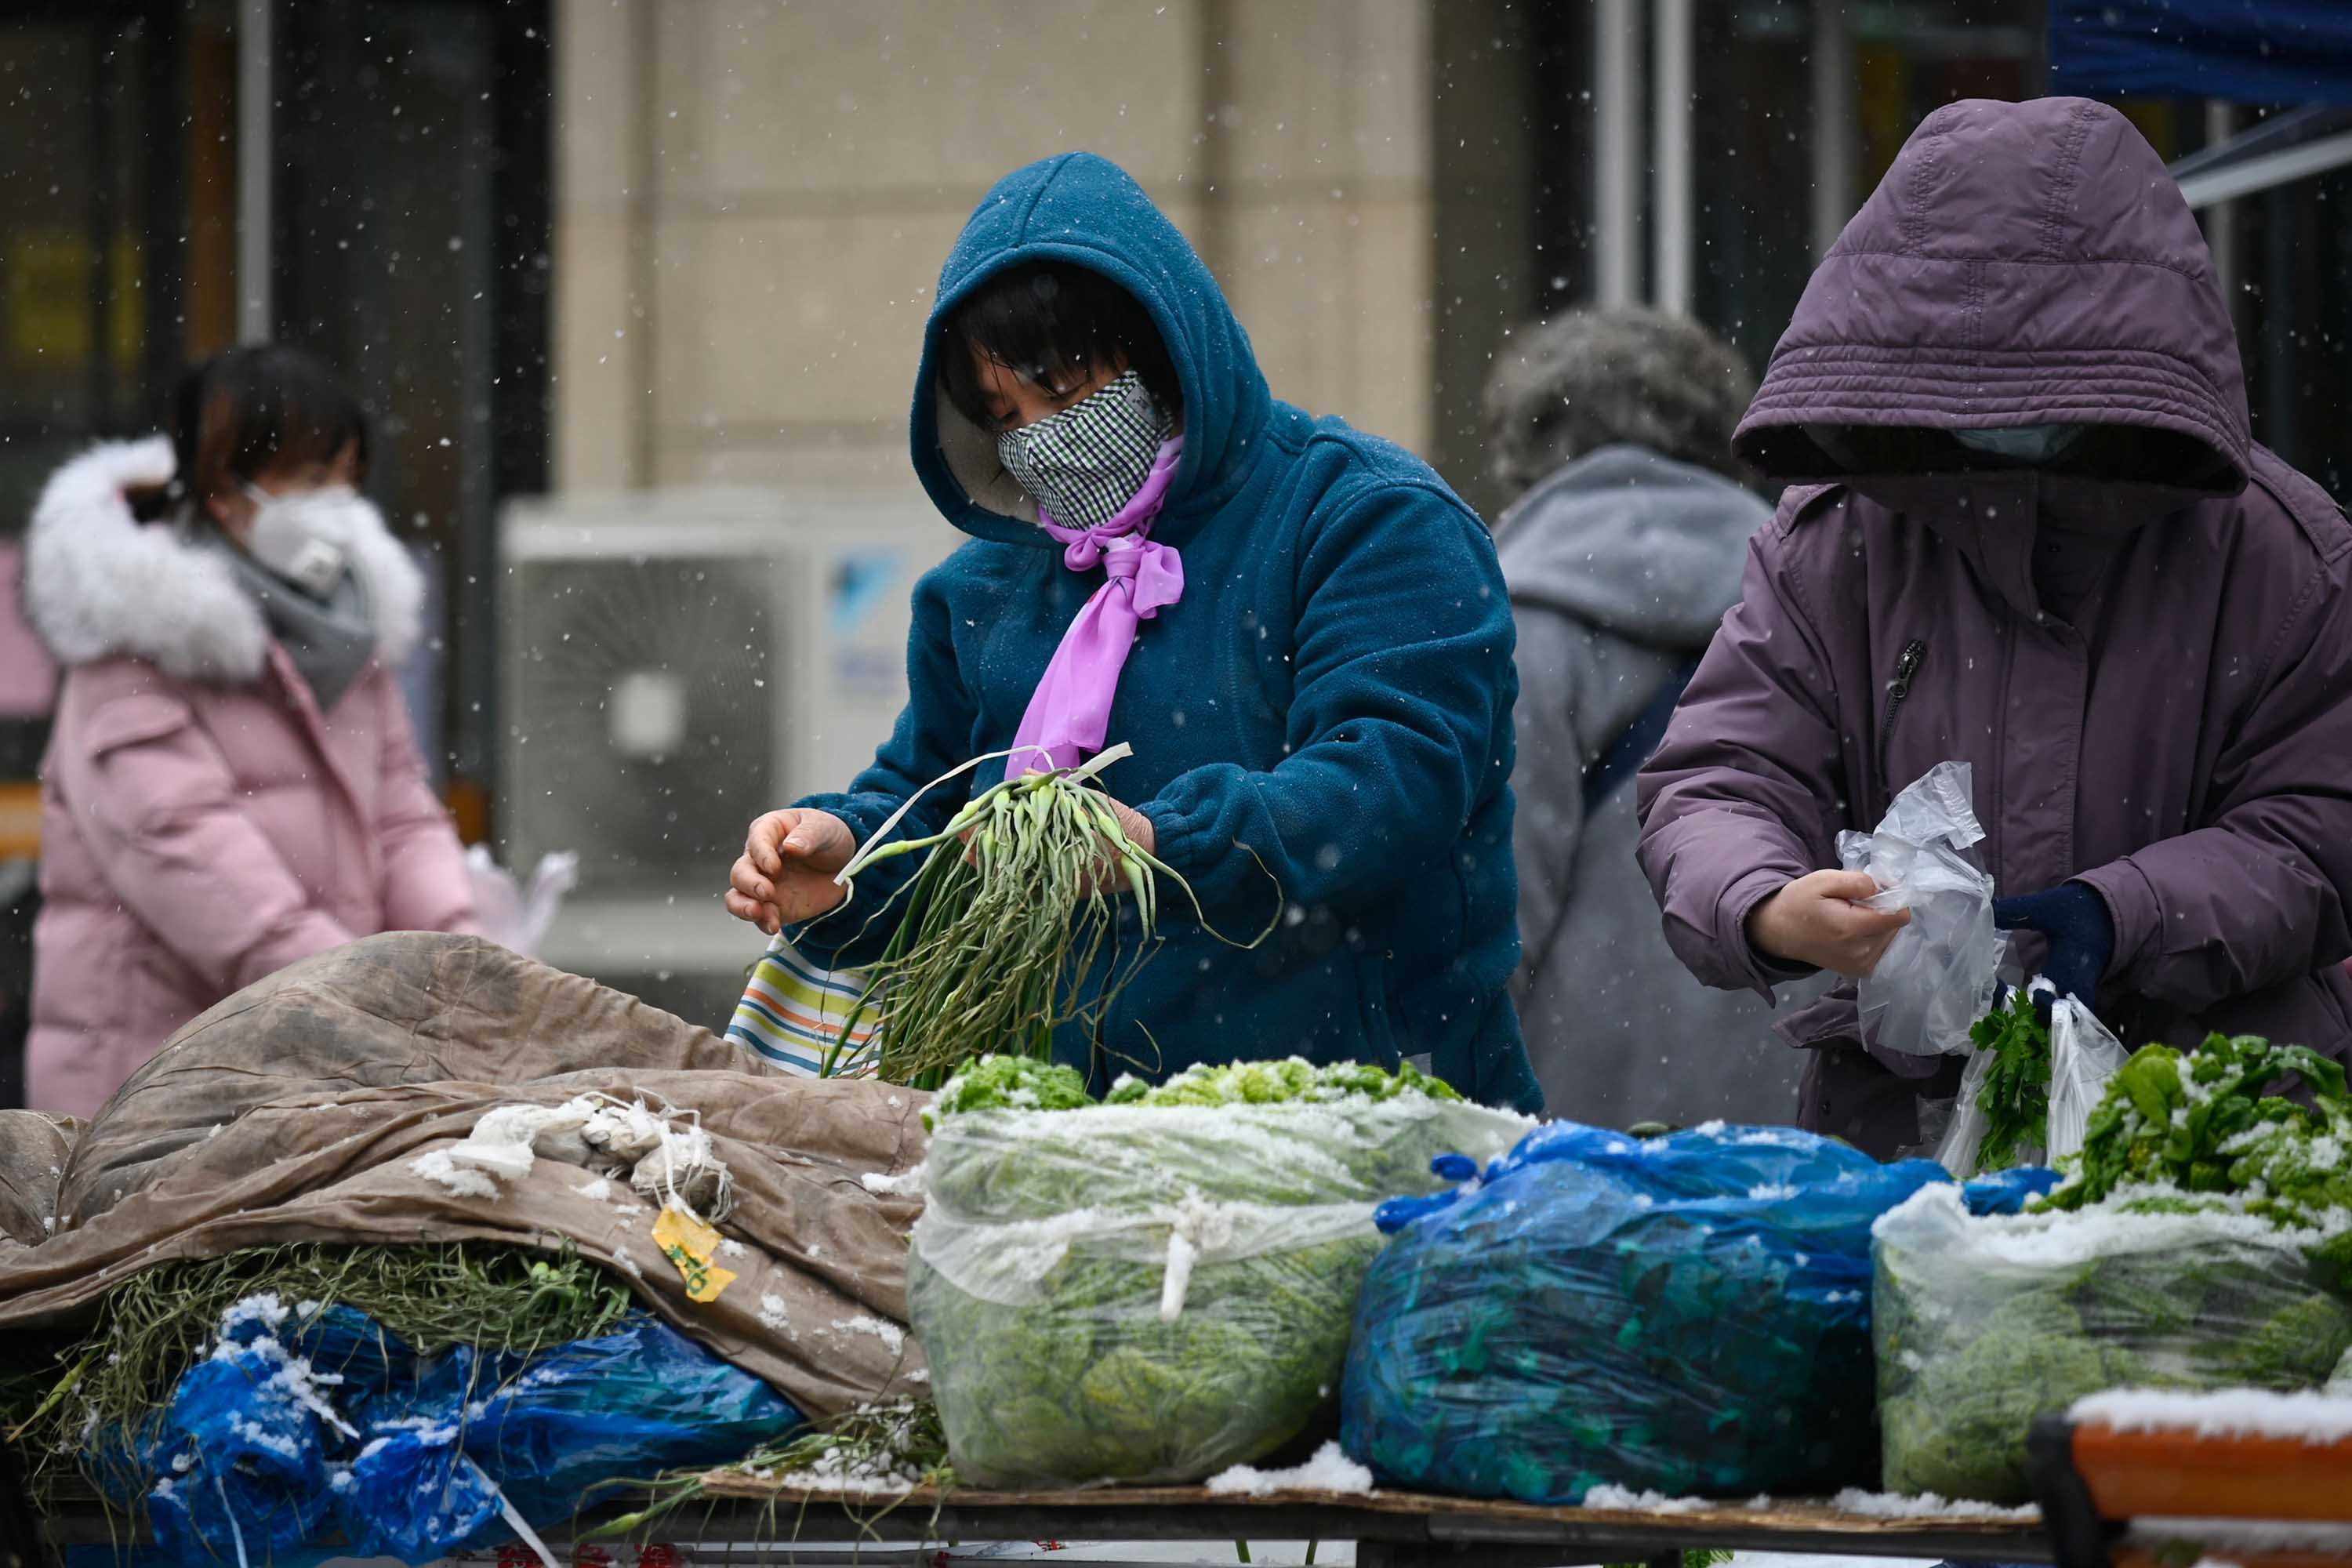 People shop for vegetables at a market in Beijing on February 2.